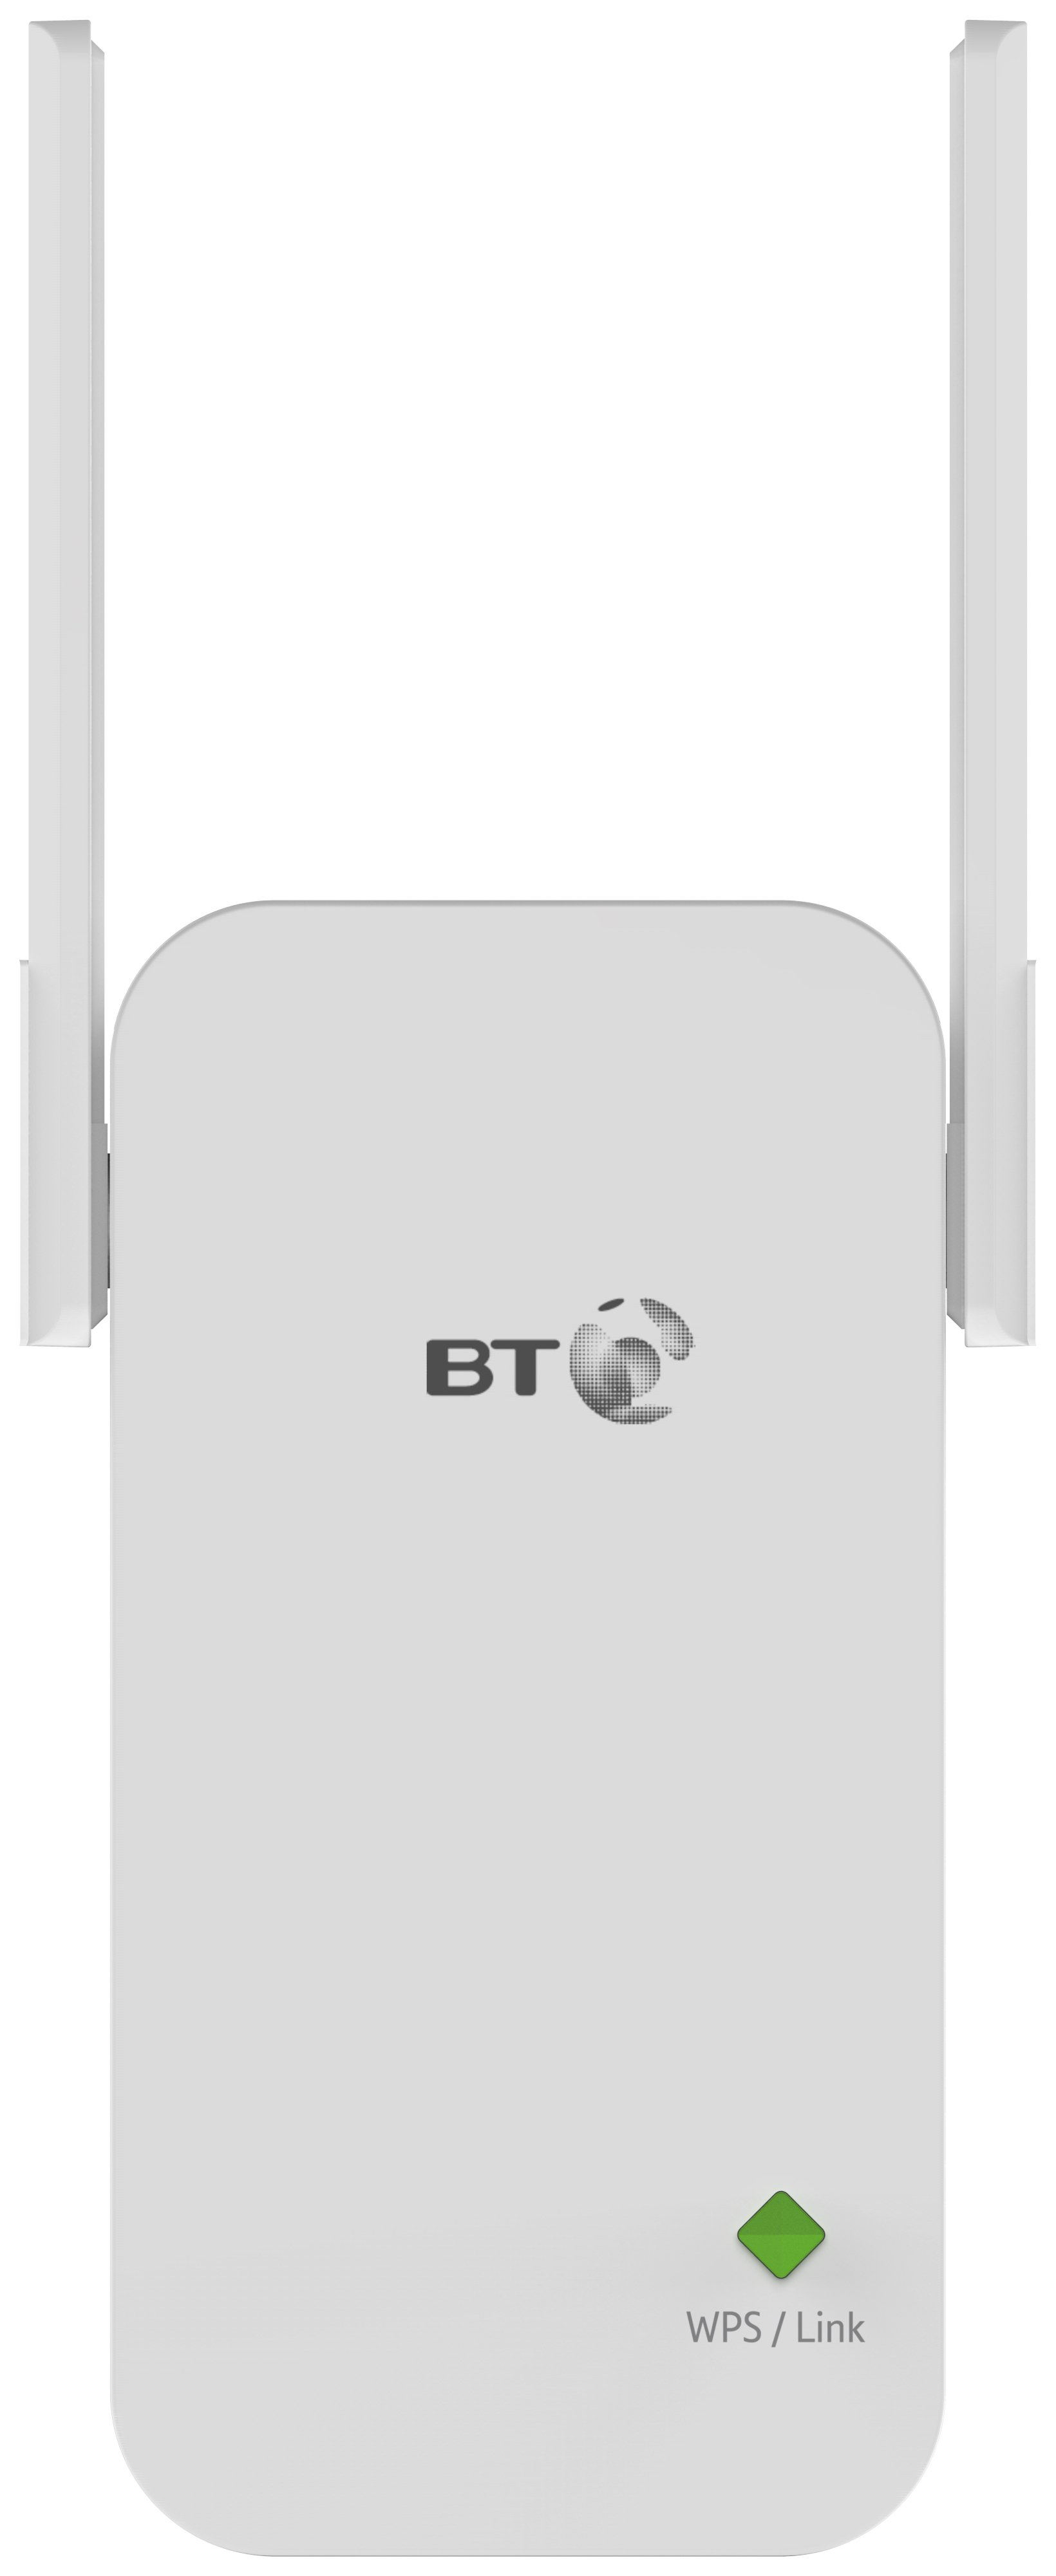 BT - Essentials WiFi - Extender 300 from BT